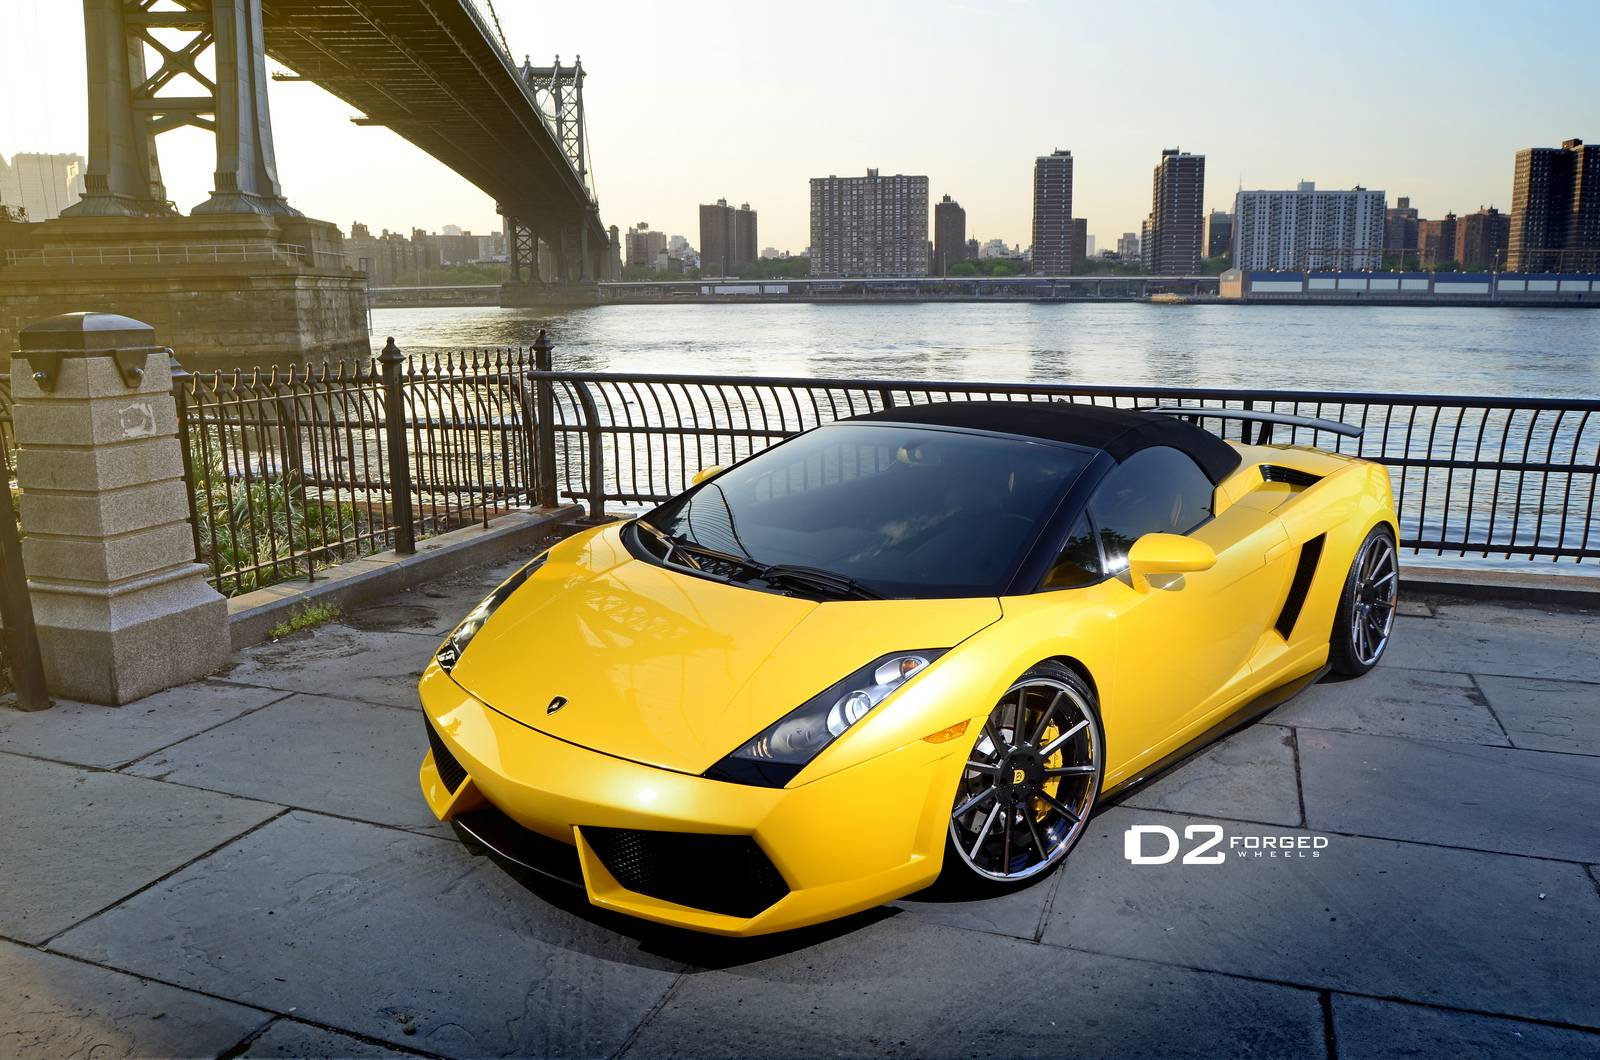 Gallery Lamborghini Gallardo Spyder On D2 Forged Wheels Gtspirit